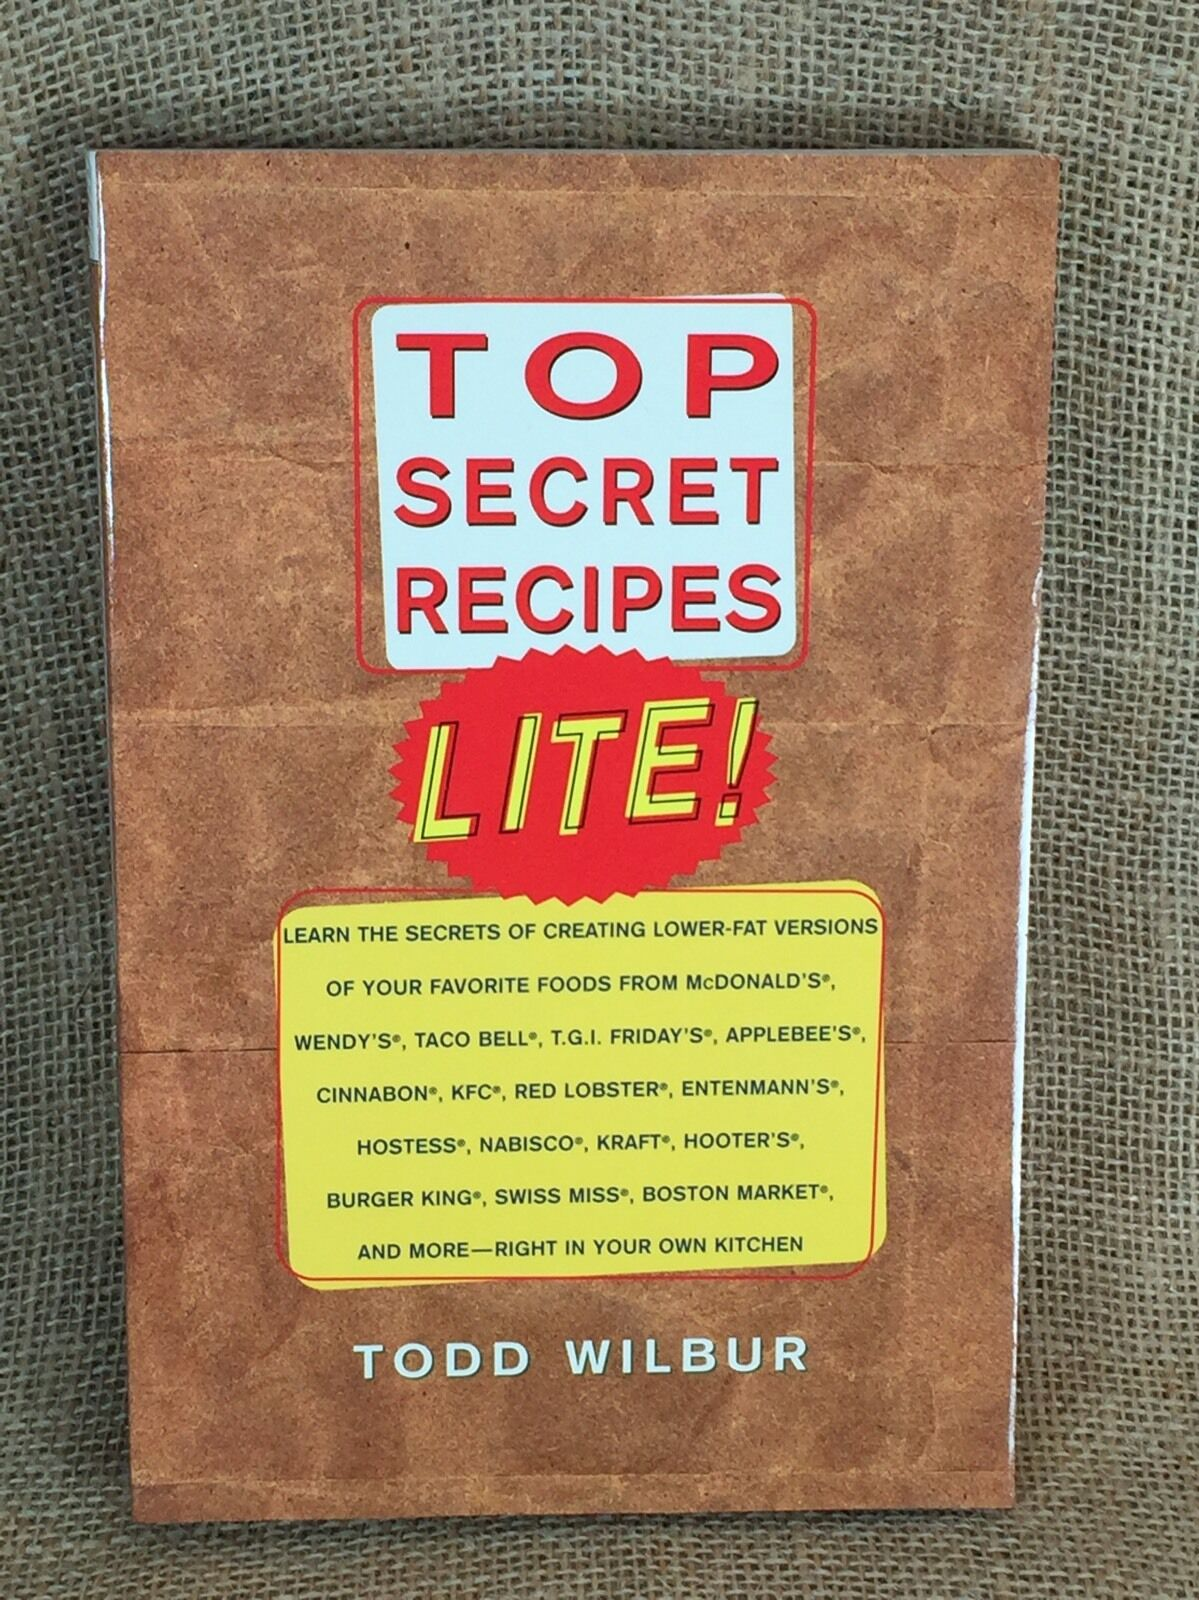 Secret Comfort Kopfkissen Top Secret Recipes Lite By Todd Wilbur 1998 Paperback